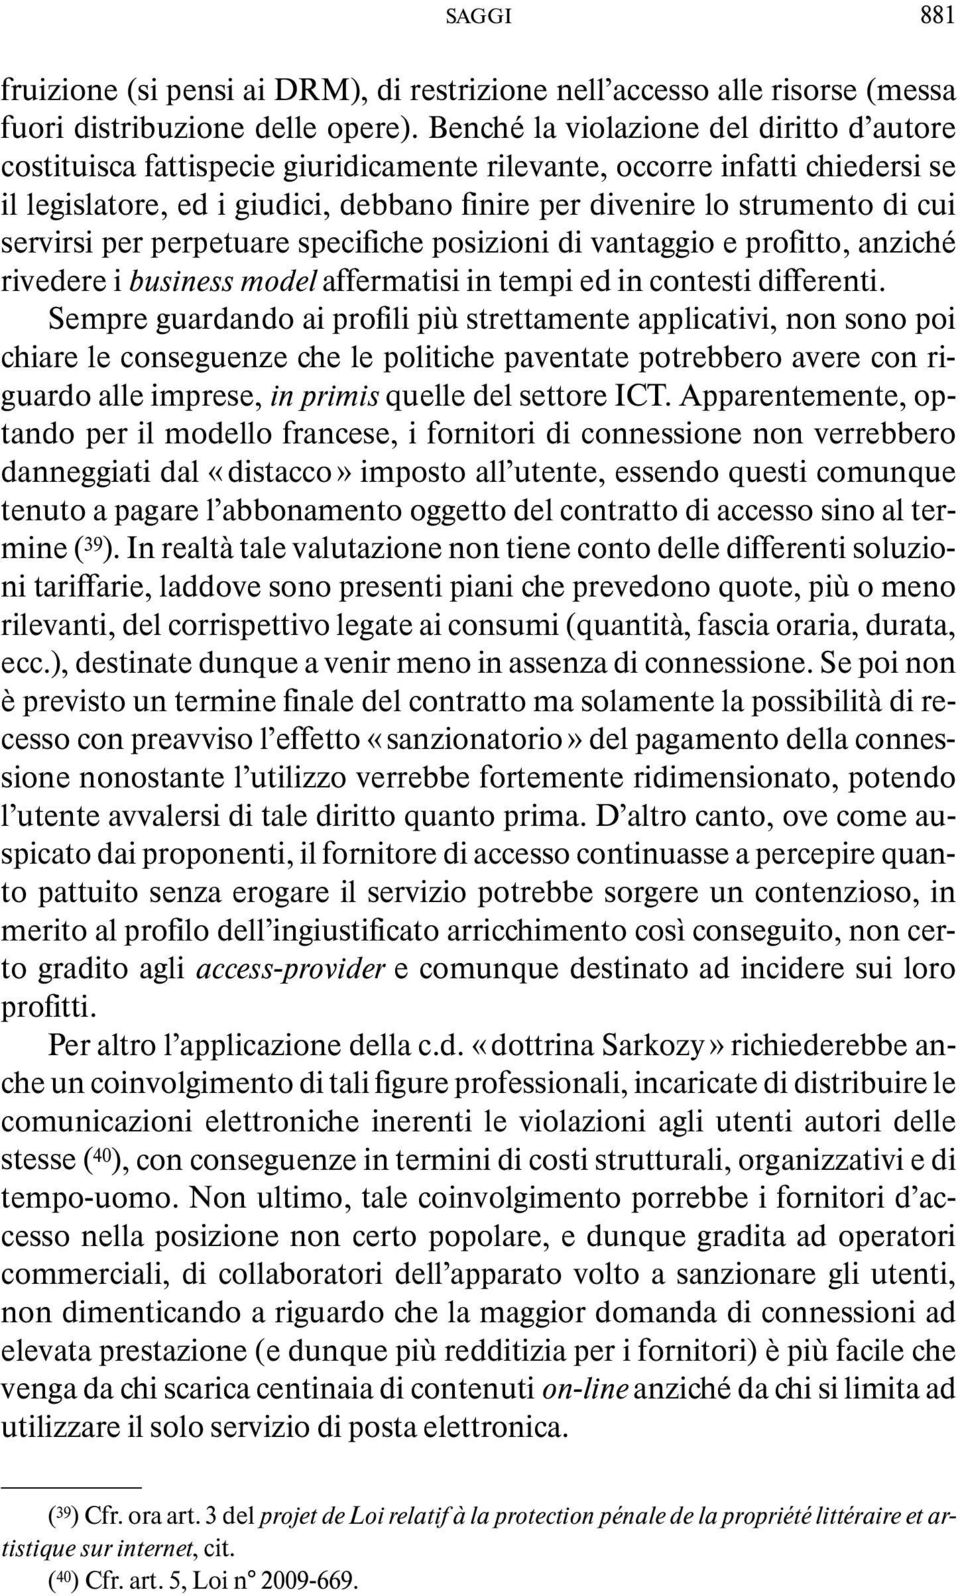 servirsi per perpetuare specifiche posizioni di vantaggio e profitto, anziché rivedere i business model affermatisi in tempi ed in contesti differenti.